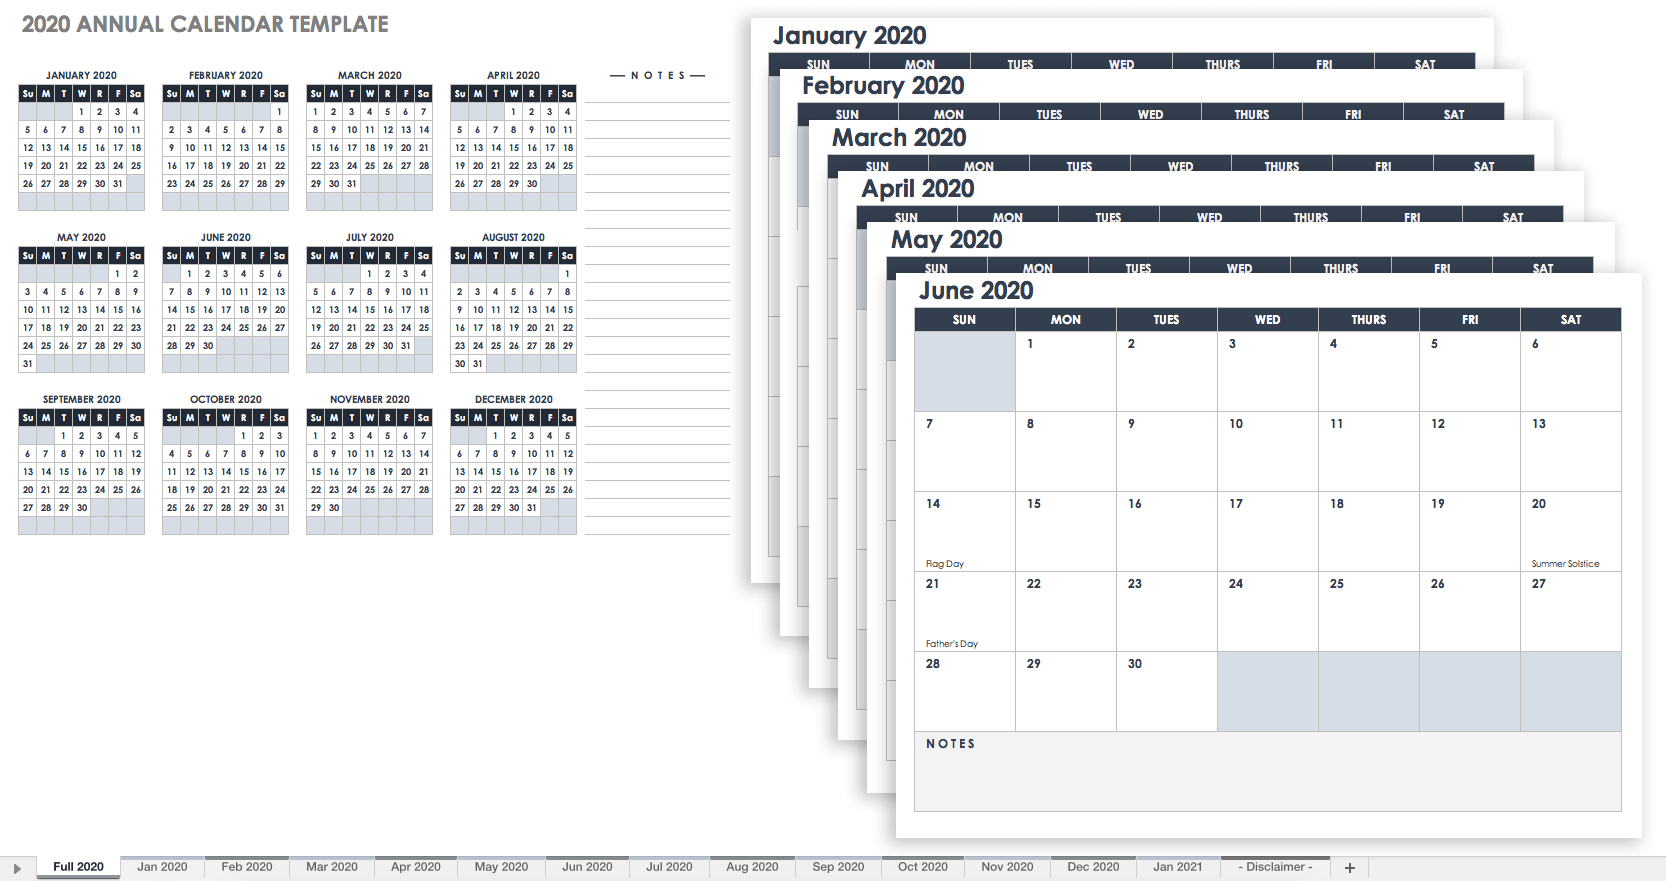 Free, Printable Excel Calendar Templates For 2019 & On | Smartsheet with Free Printable Preschool Handprint Calendar Templates